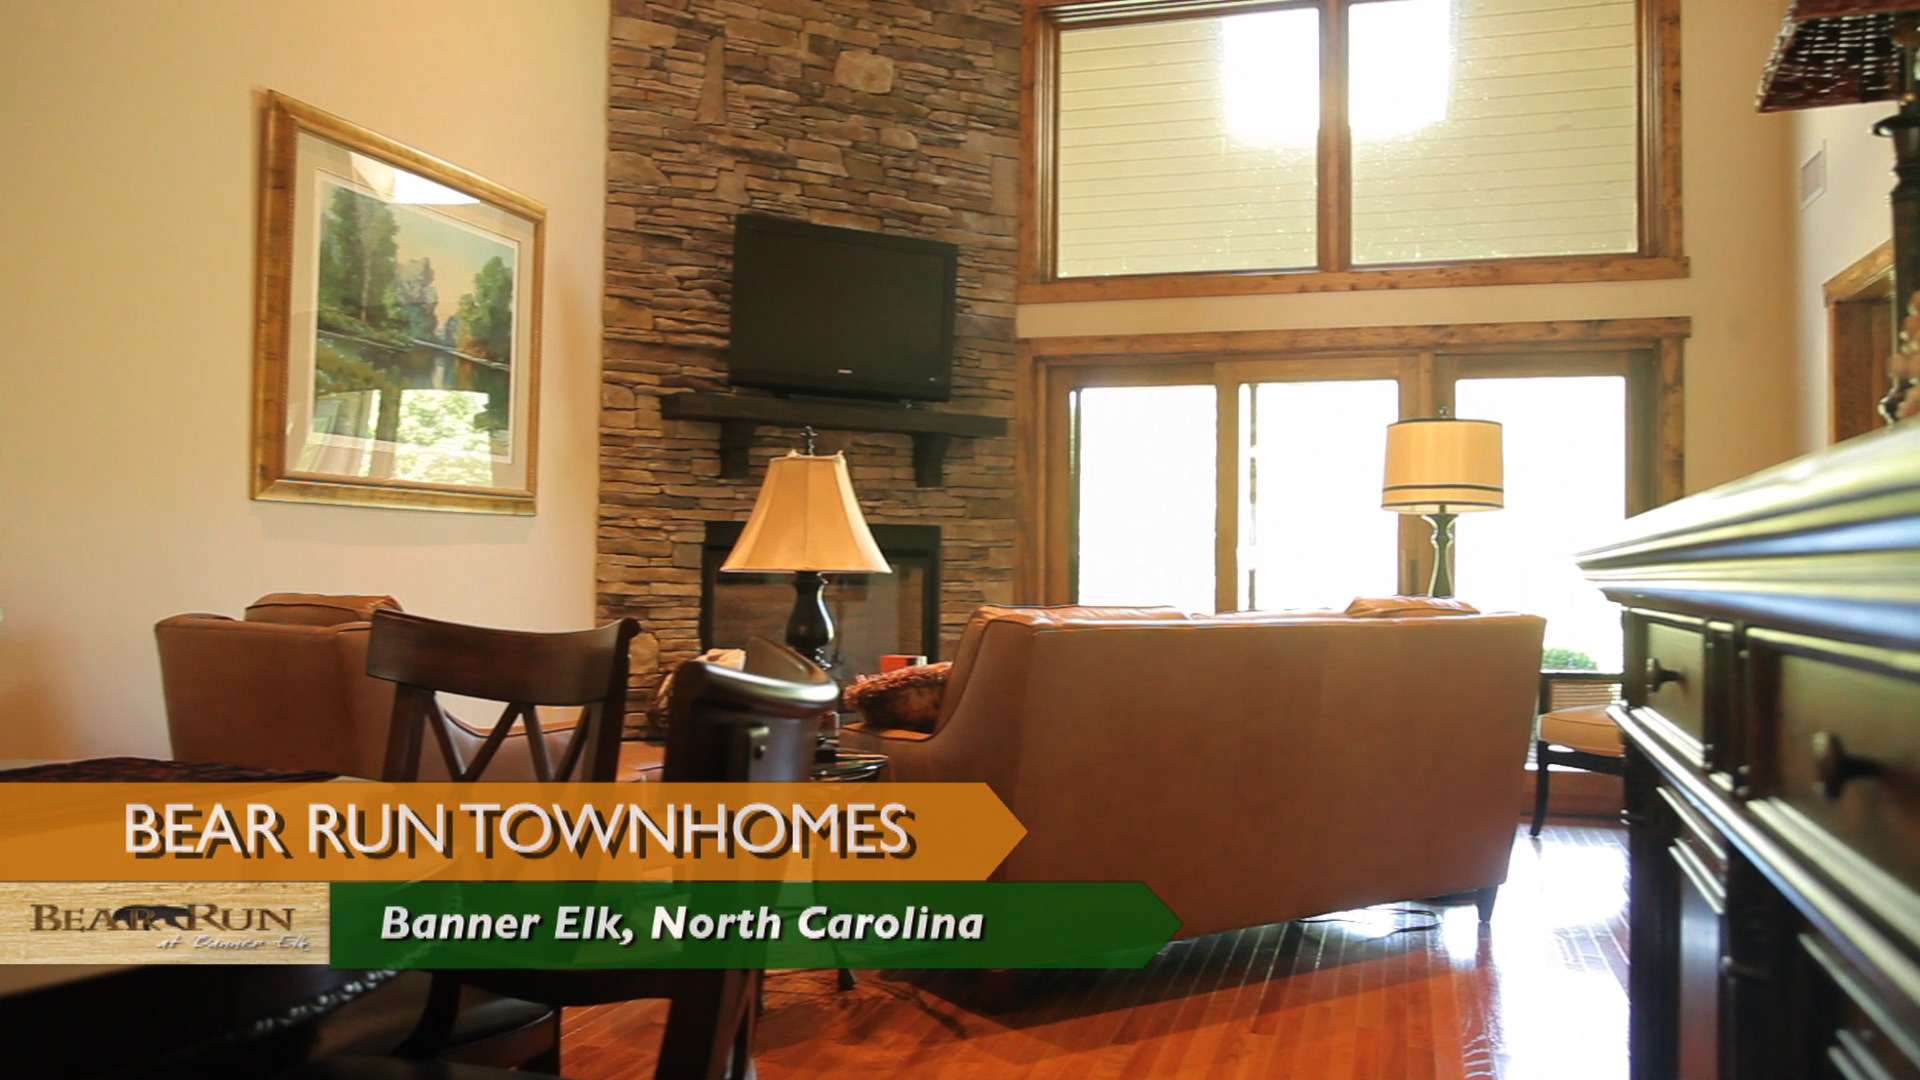 Bear Run Townhomes (Carolina Homes on Demand)